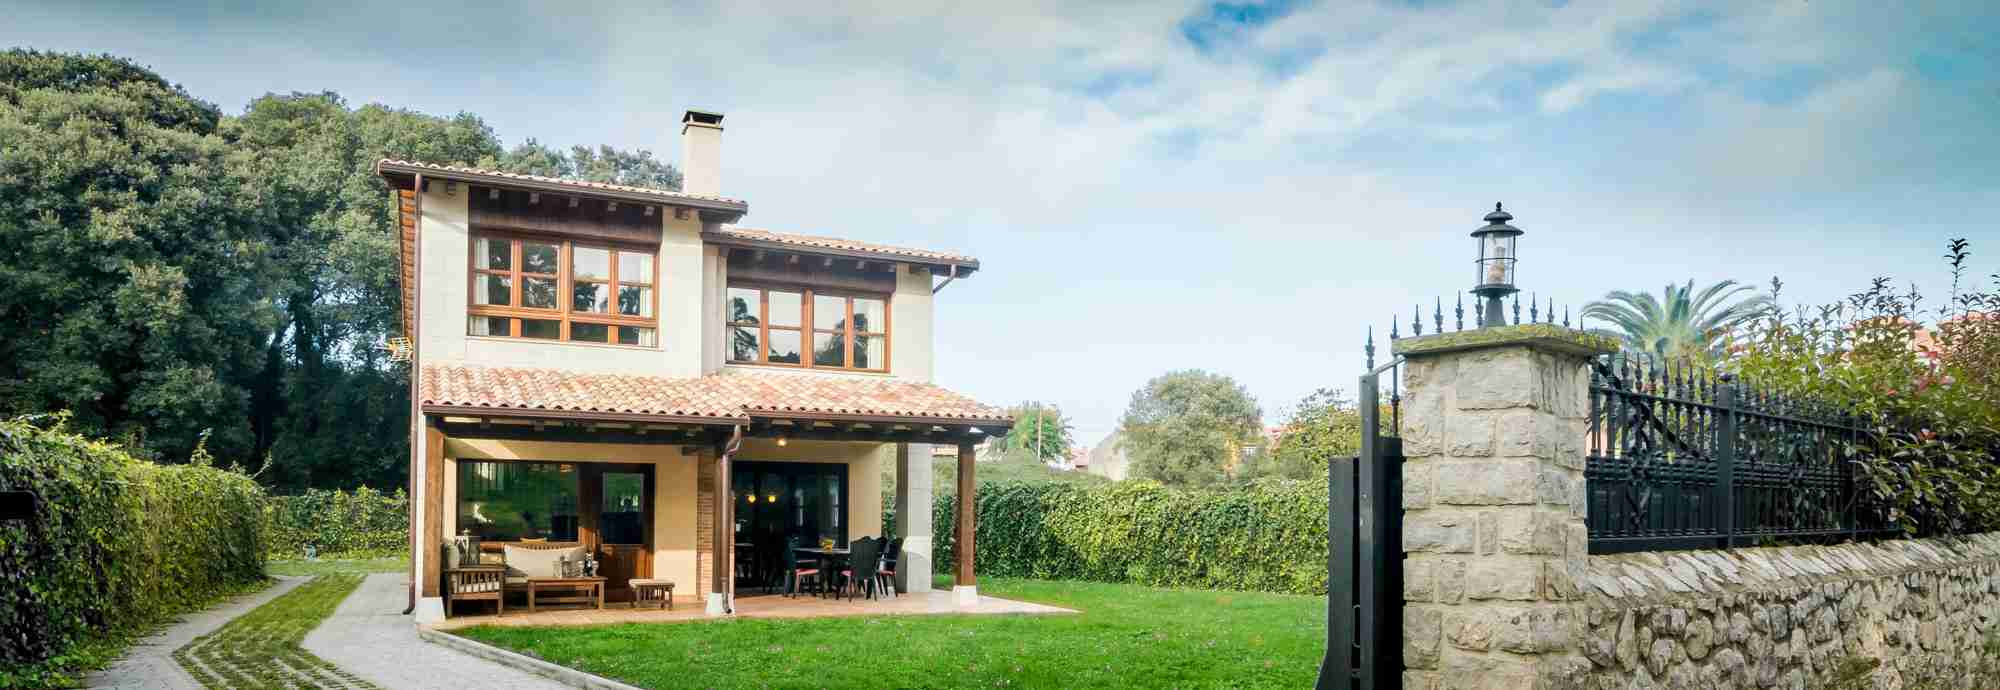 Asturias villa within walking distance of beach, village and railway station